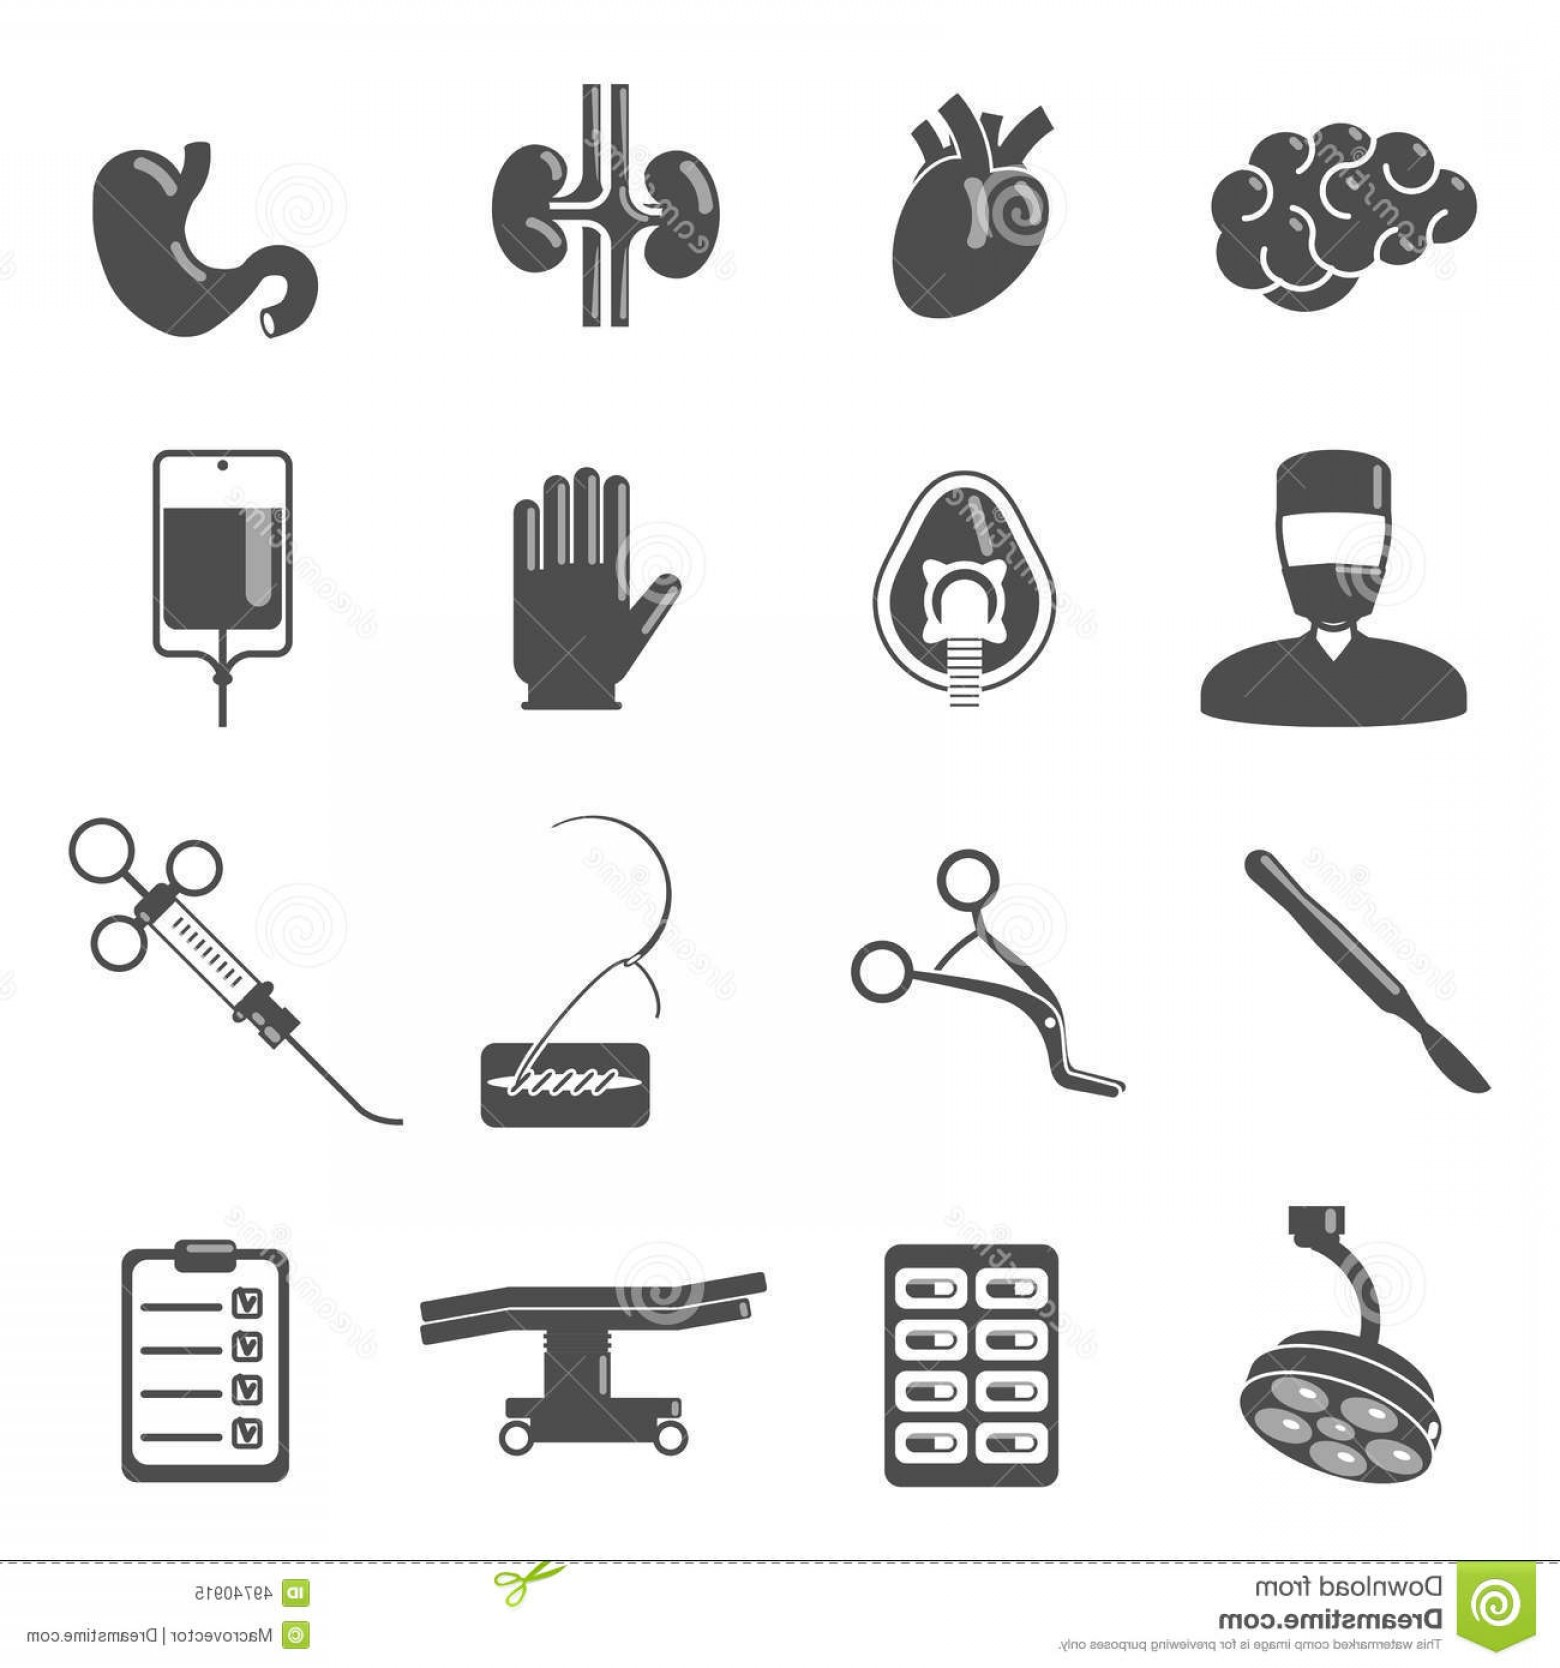 Surgery Icon Vector: Stock Illustration Surgery Icons Black Set Brain Blood Stomach Scalpel Isolated Vector Illustration Image